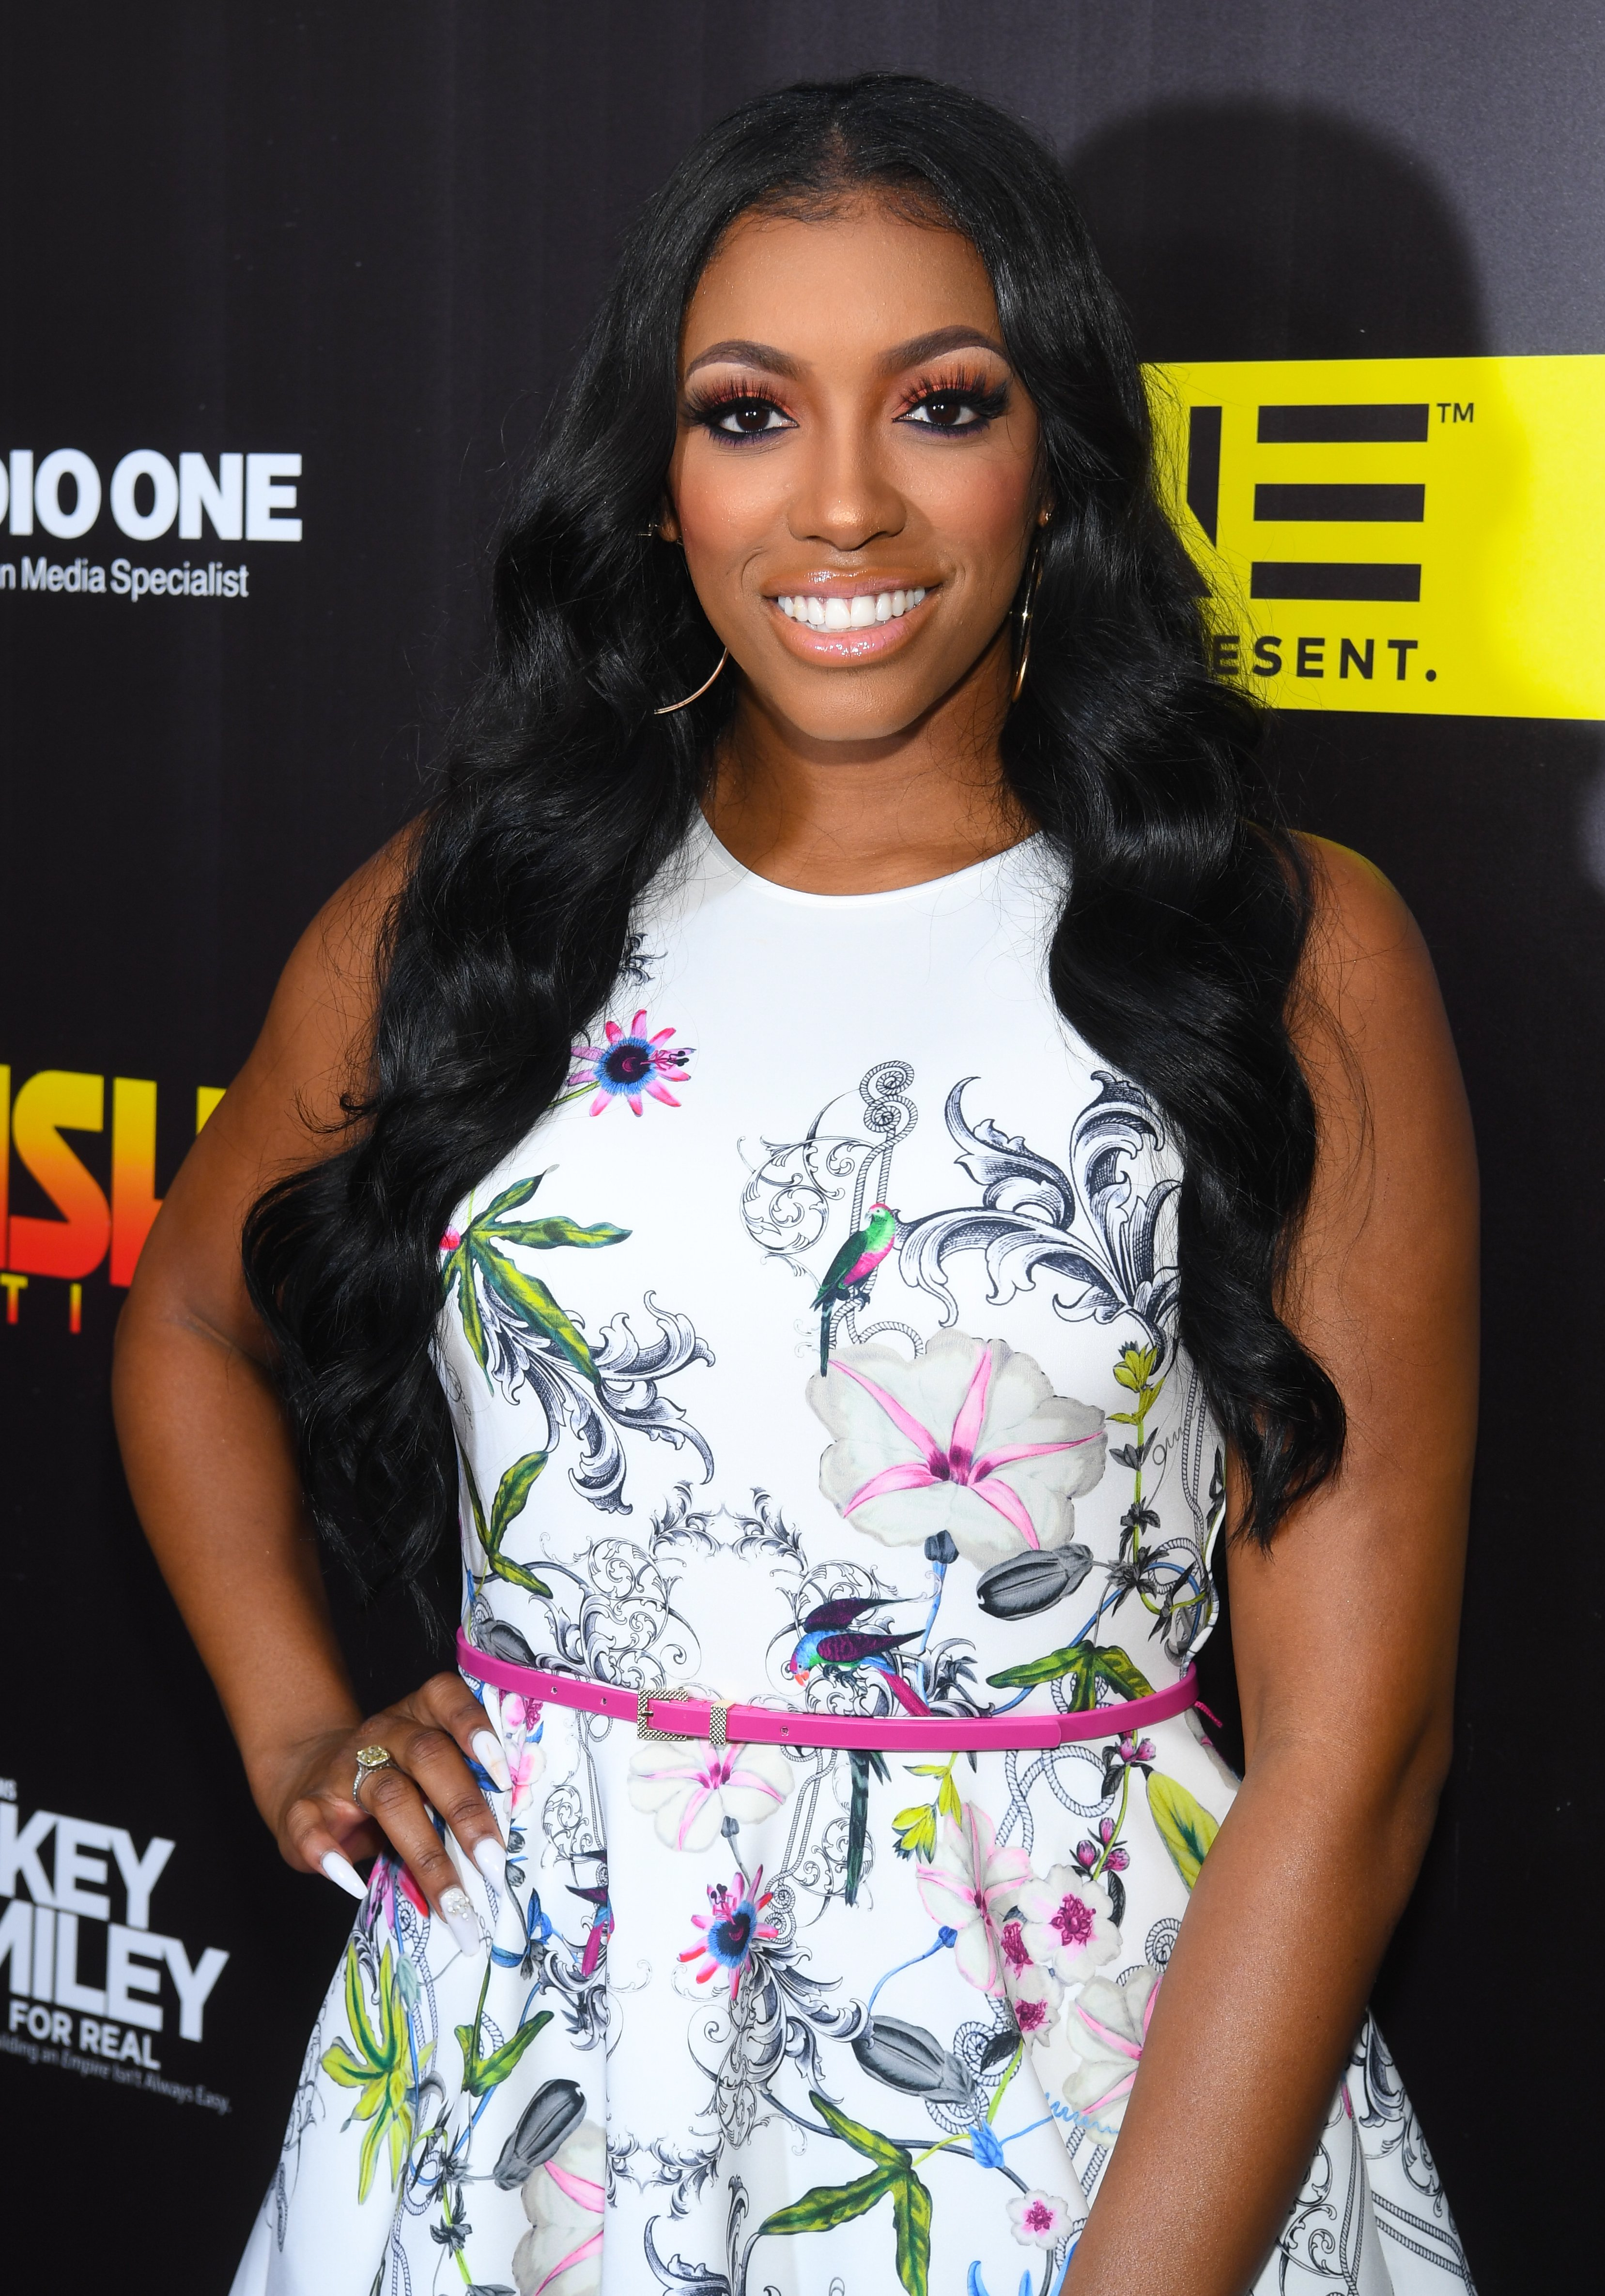 """Porsha Williams at the """"Rickey Smiley For Real"""" Season 4 premiere at Regal Atlantic Station on June 13, 2017 in Atlanta, Georgia. 